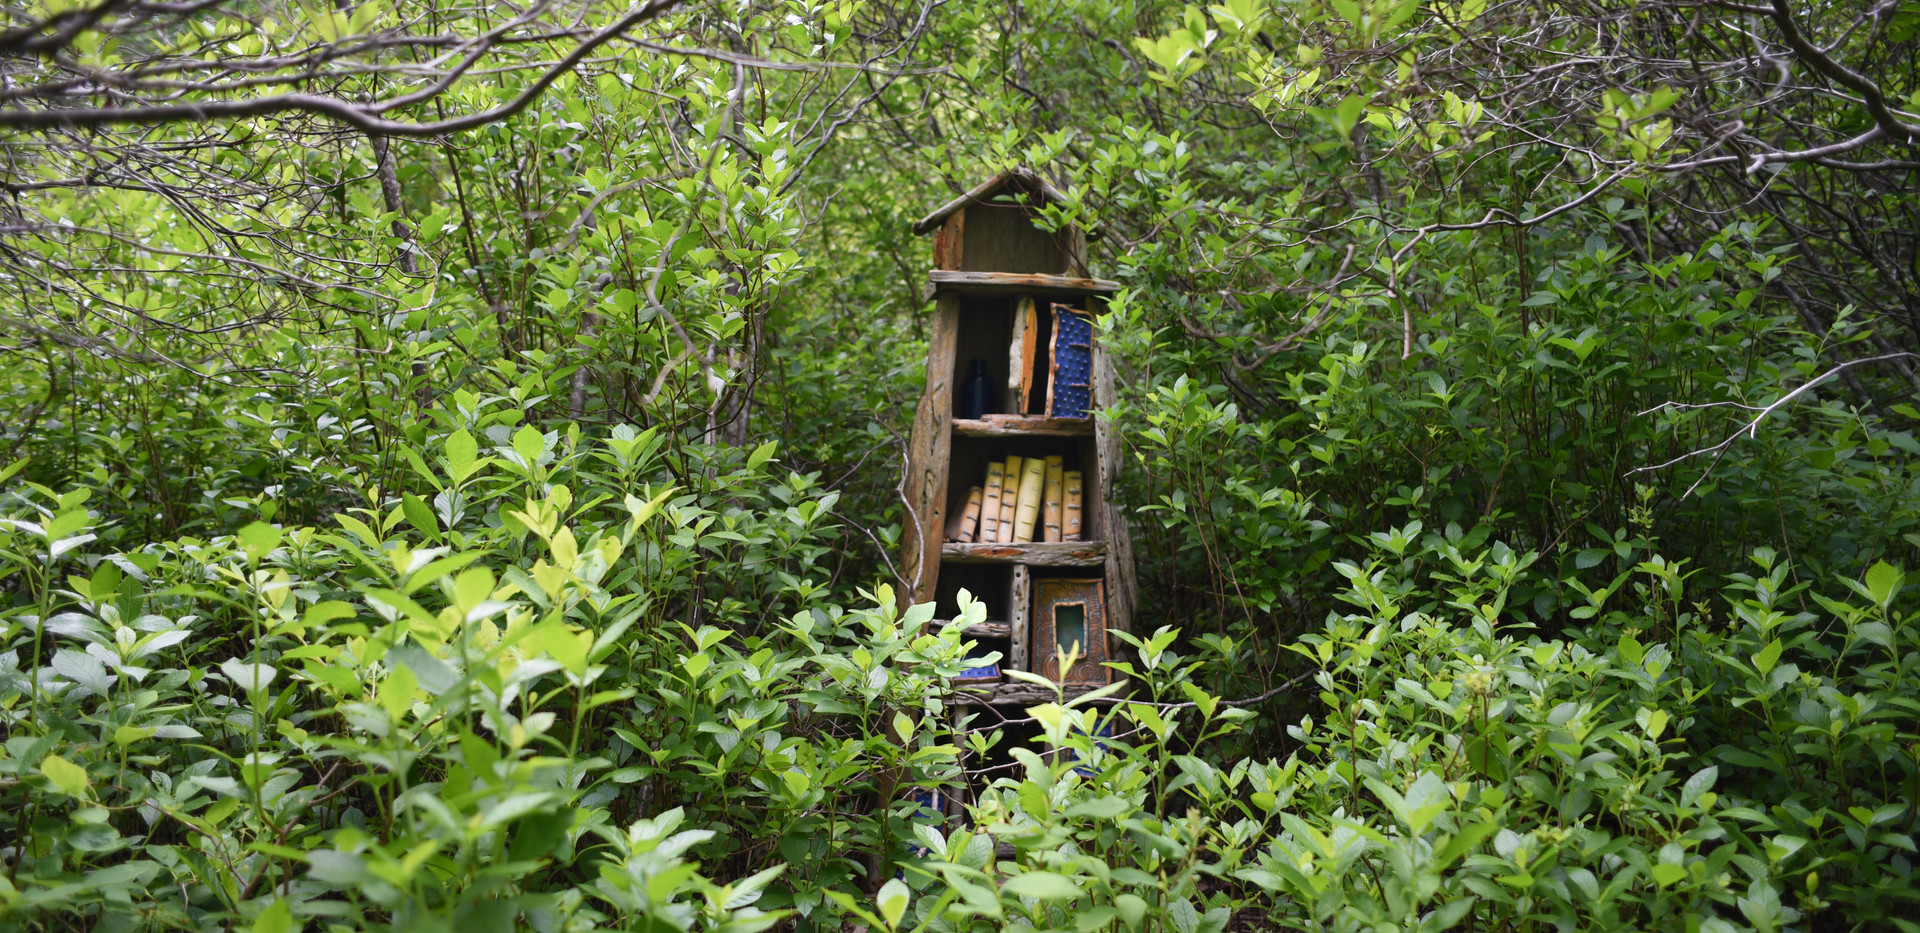 The Woodland Book Case